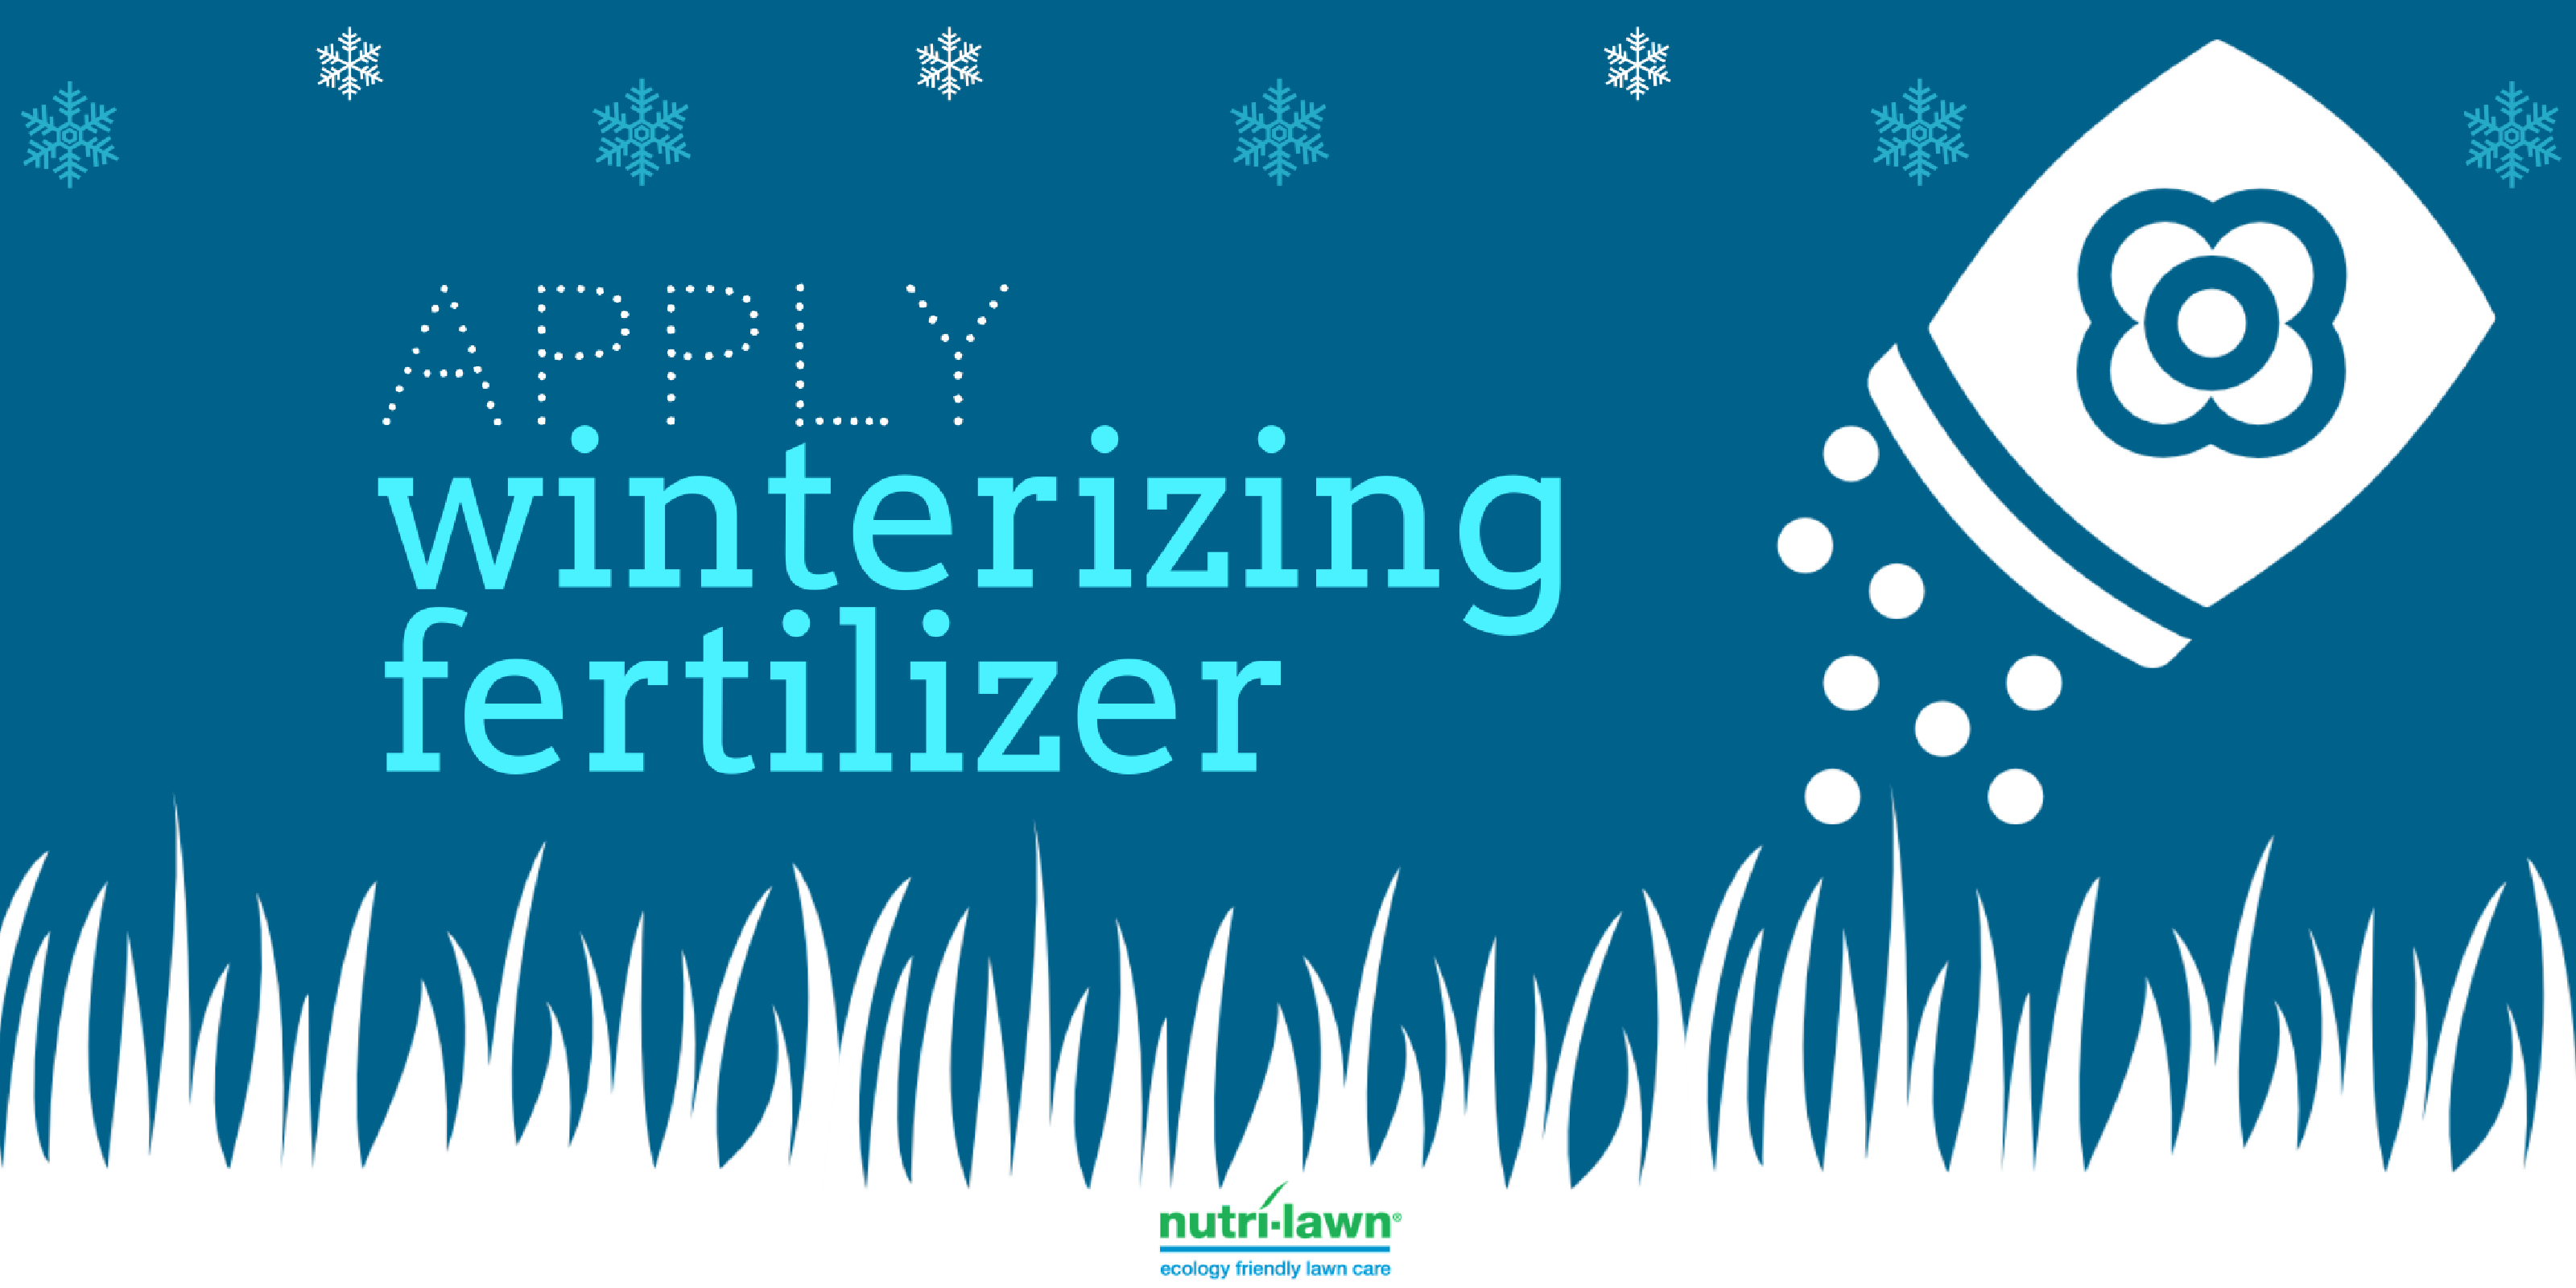 One of the most important things you can do for your lawn is to provide it with the nutrients it needs to grow healthy.